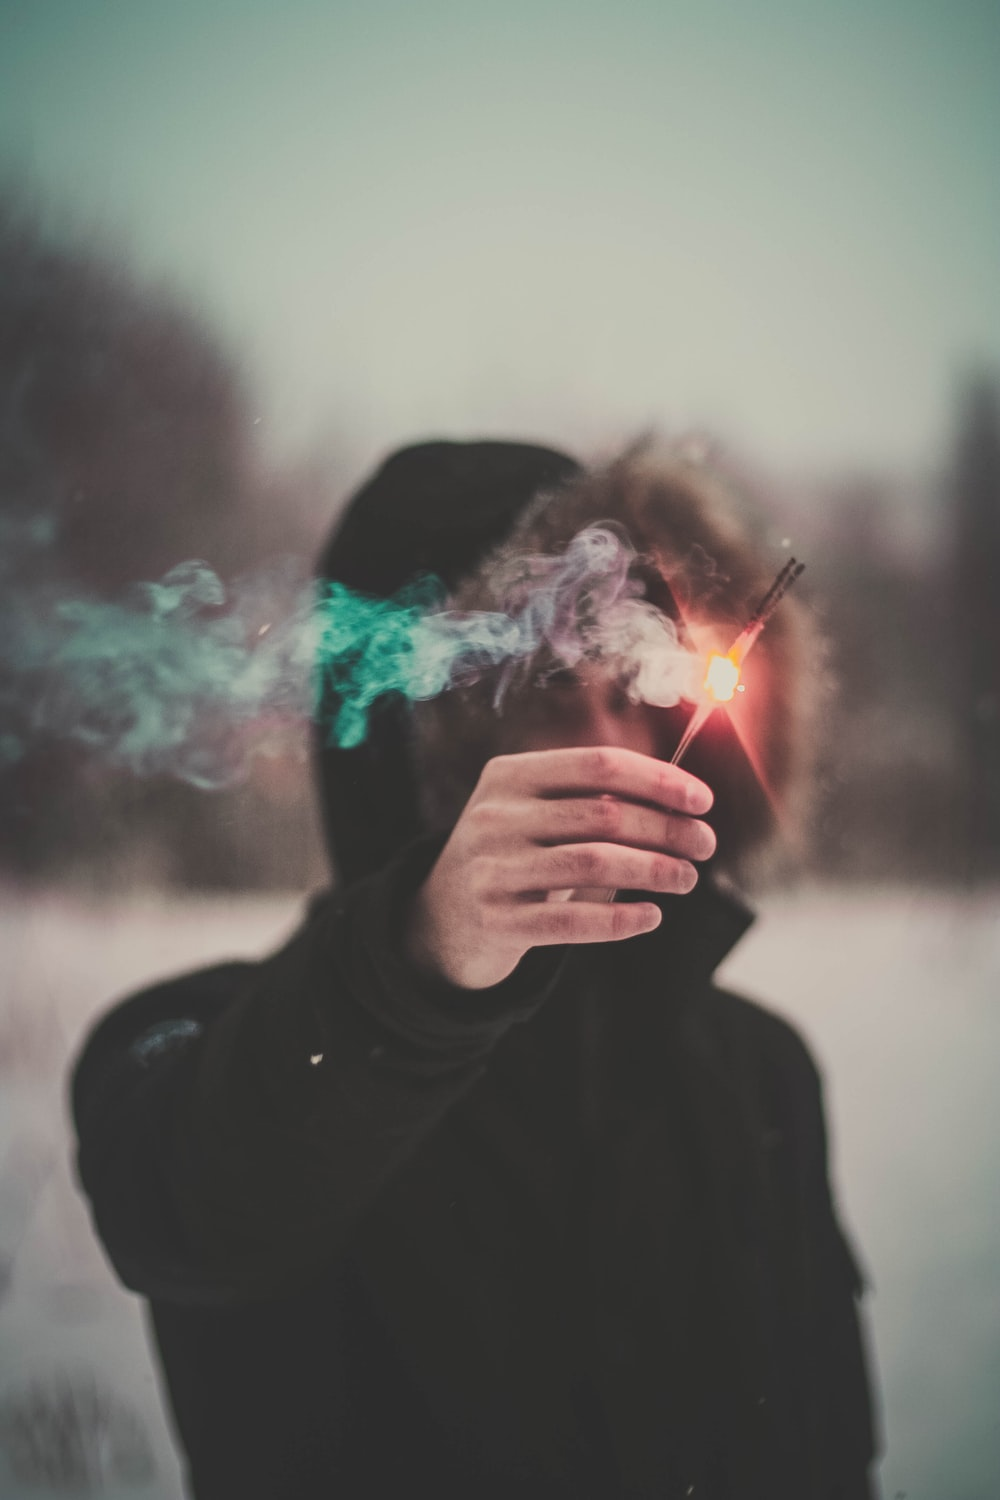 photo of person wearing hooded jacket holding lighted incense